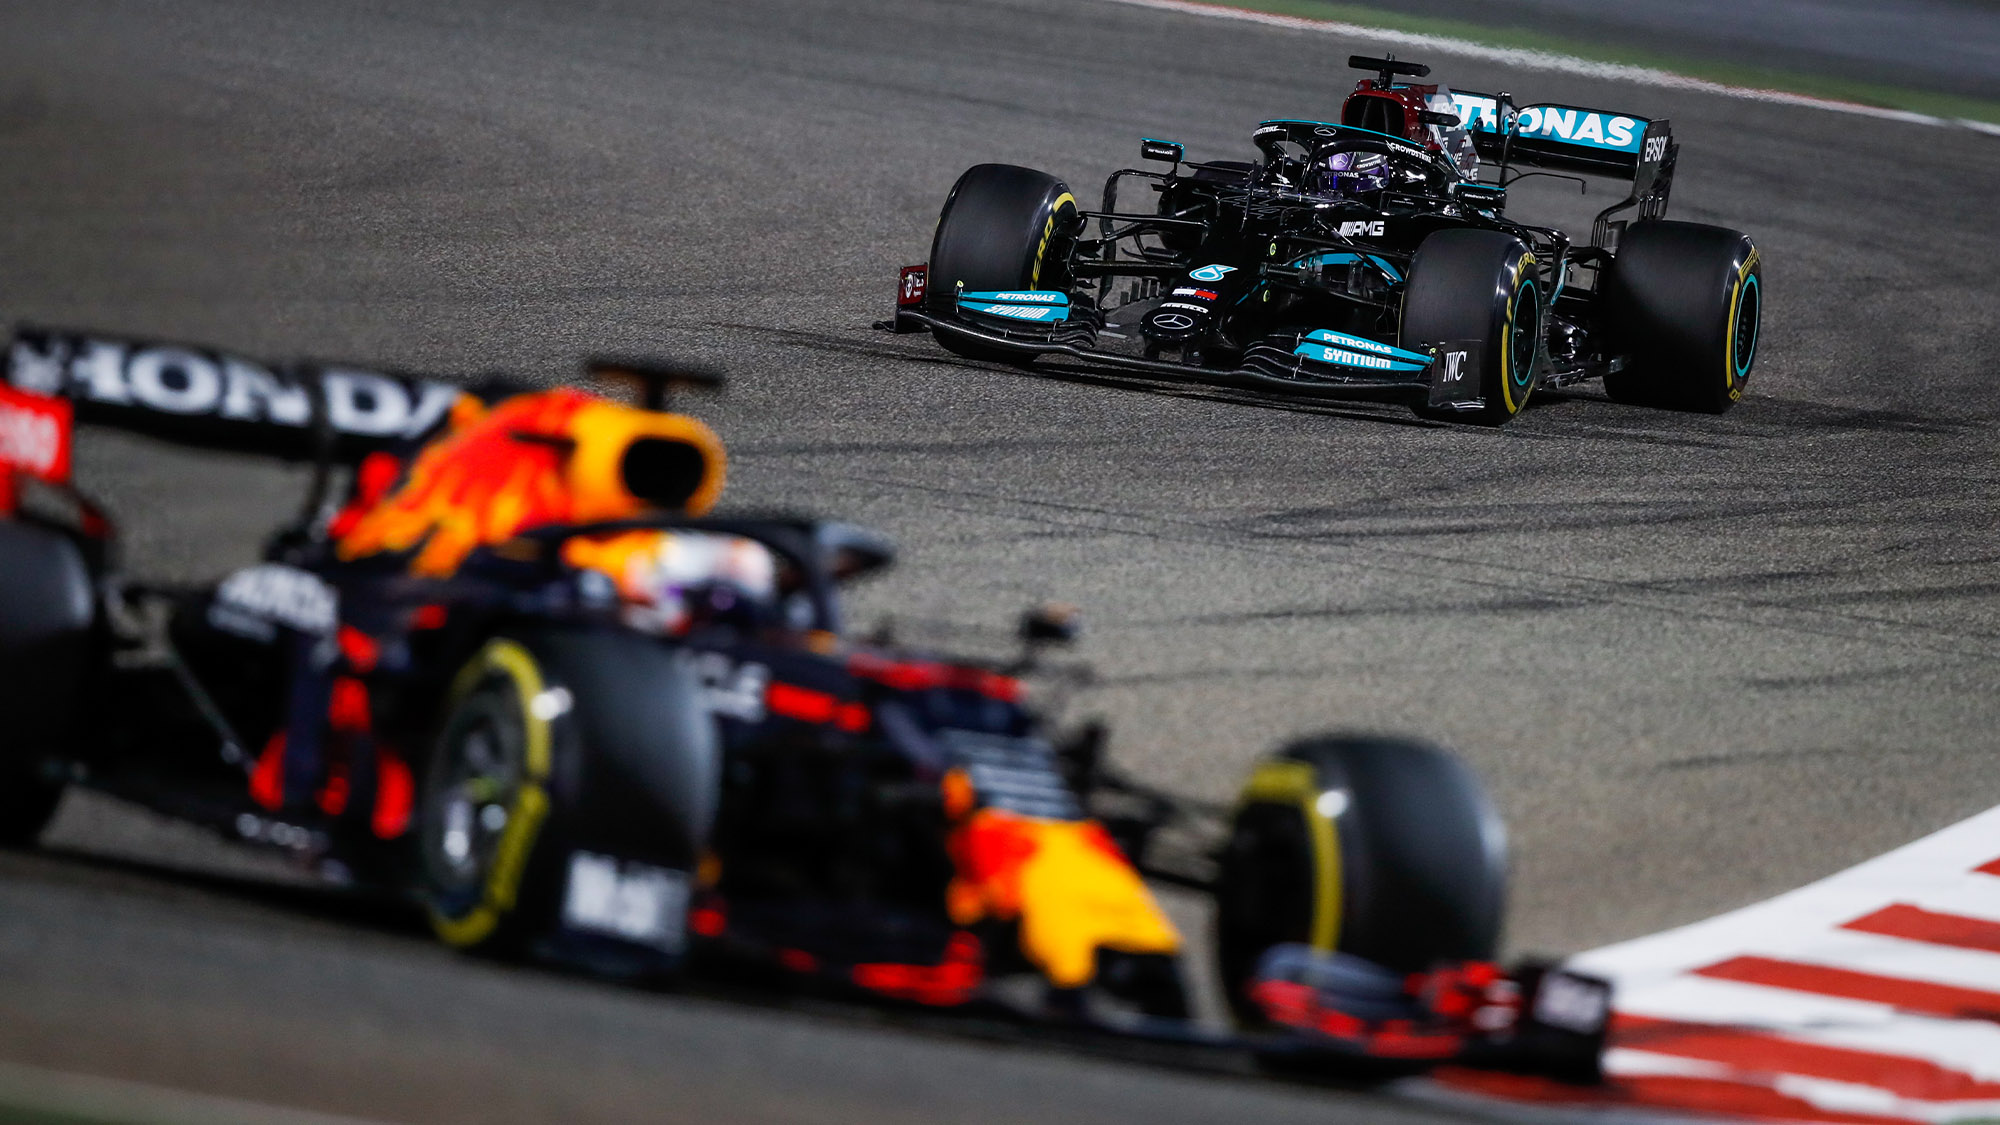 'We're the hunters', says Valtteri Bottas, 'but we can catch Red Bull'